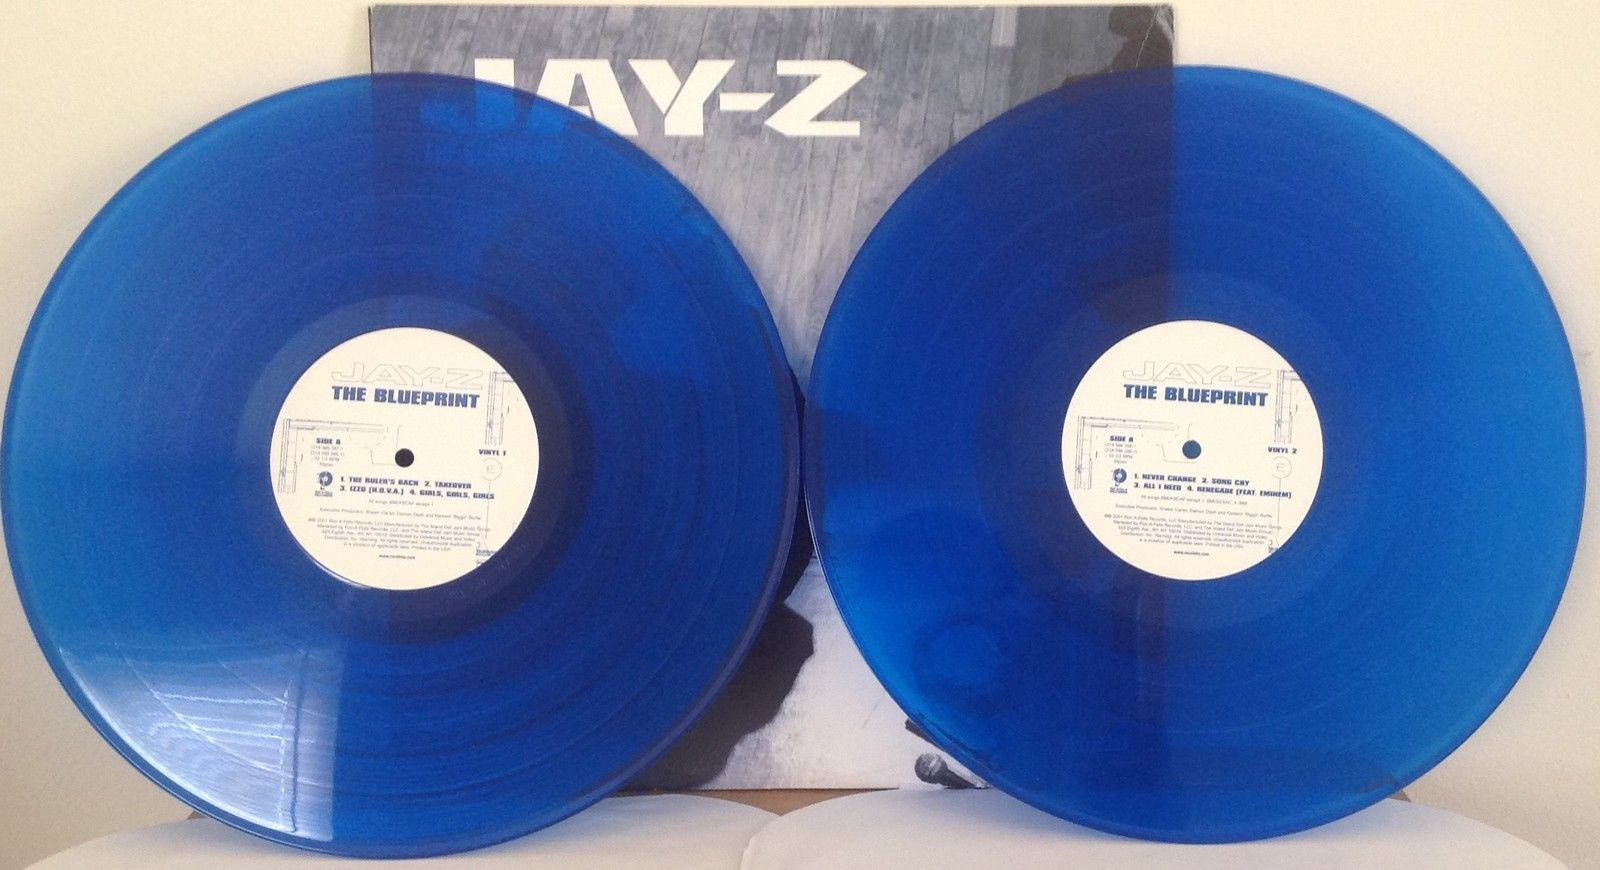 Jay z the blueprint original promo blue vinyl 2 lp 2001 rocafella jay z the blueprint original promo blue vinyl 2 lp 2001 rocafella records kanye malvernweather Image collections